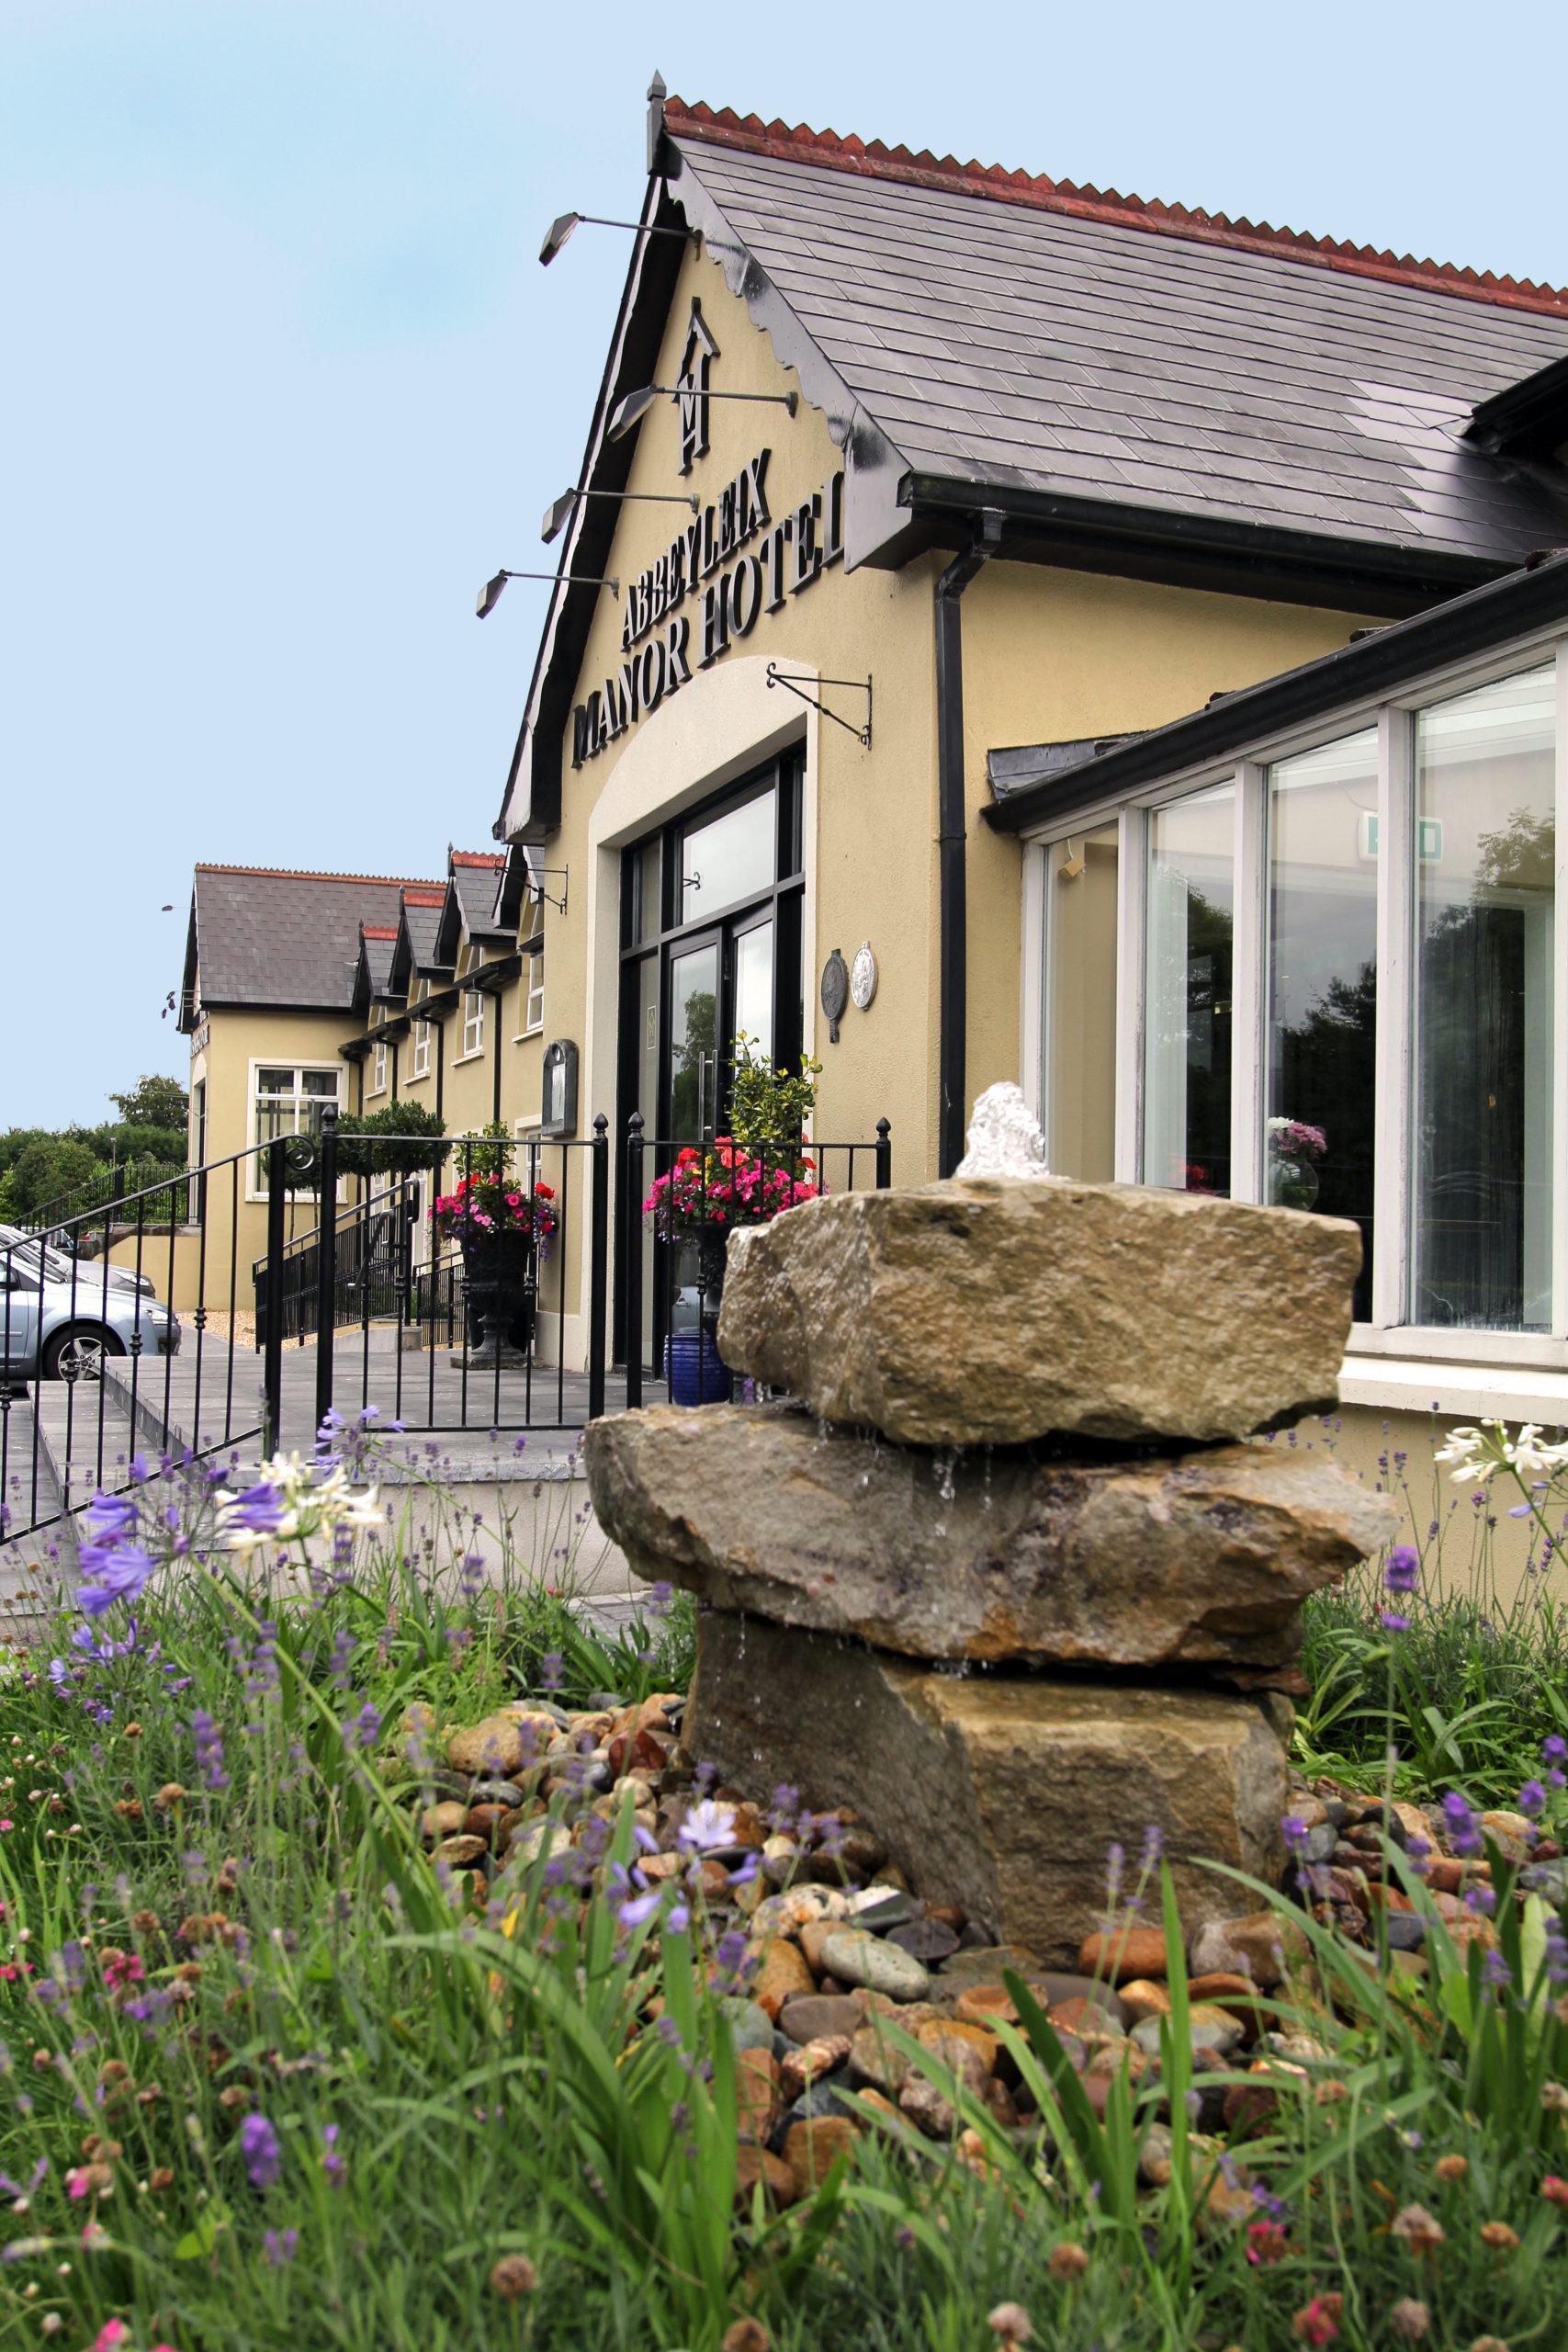 The Abbeyleix Manor Hotel